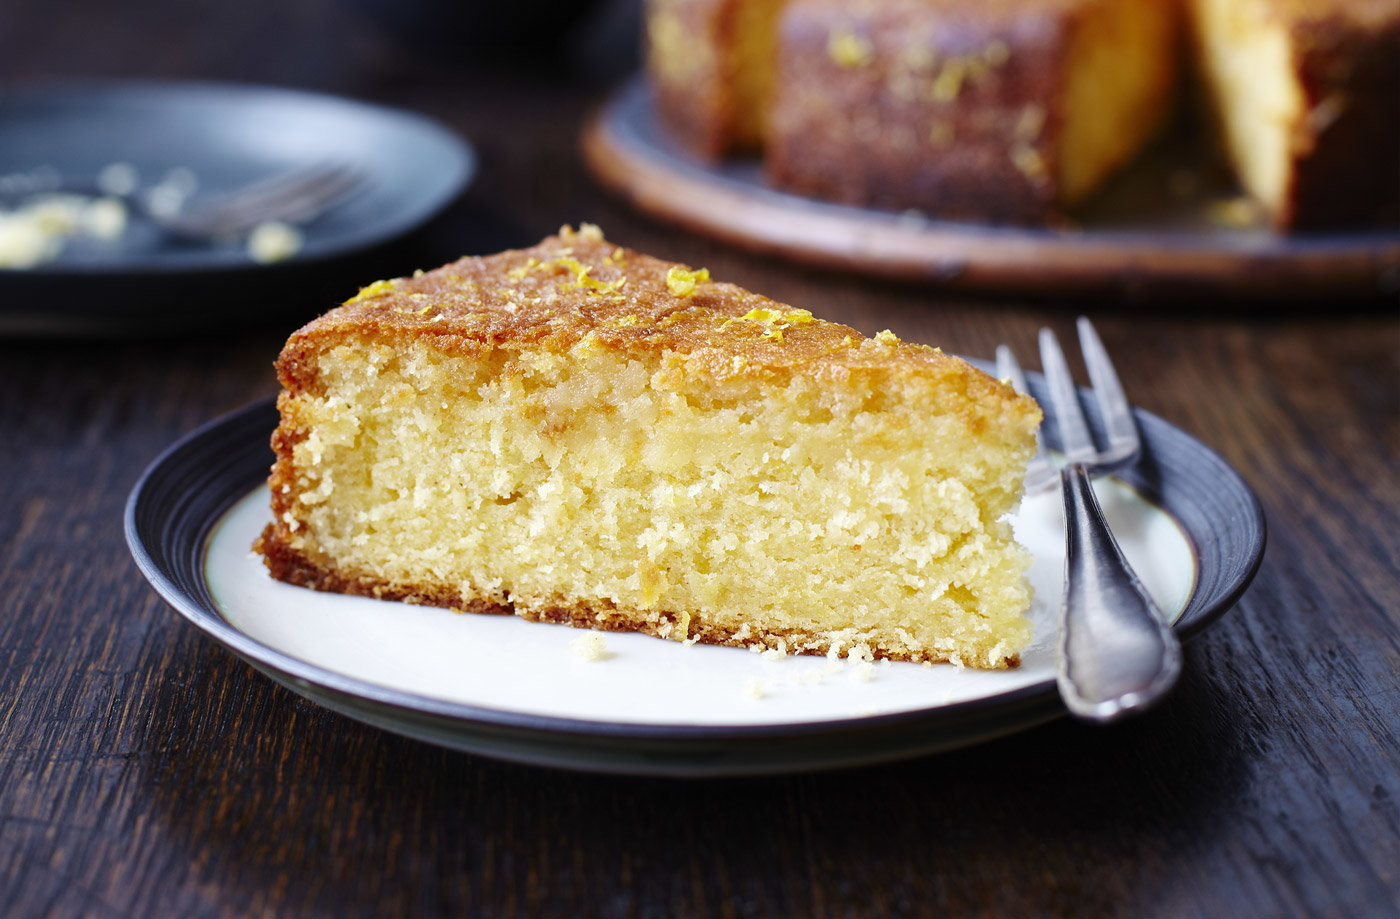 Ginger Lemon Drizzle Cake